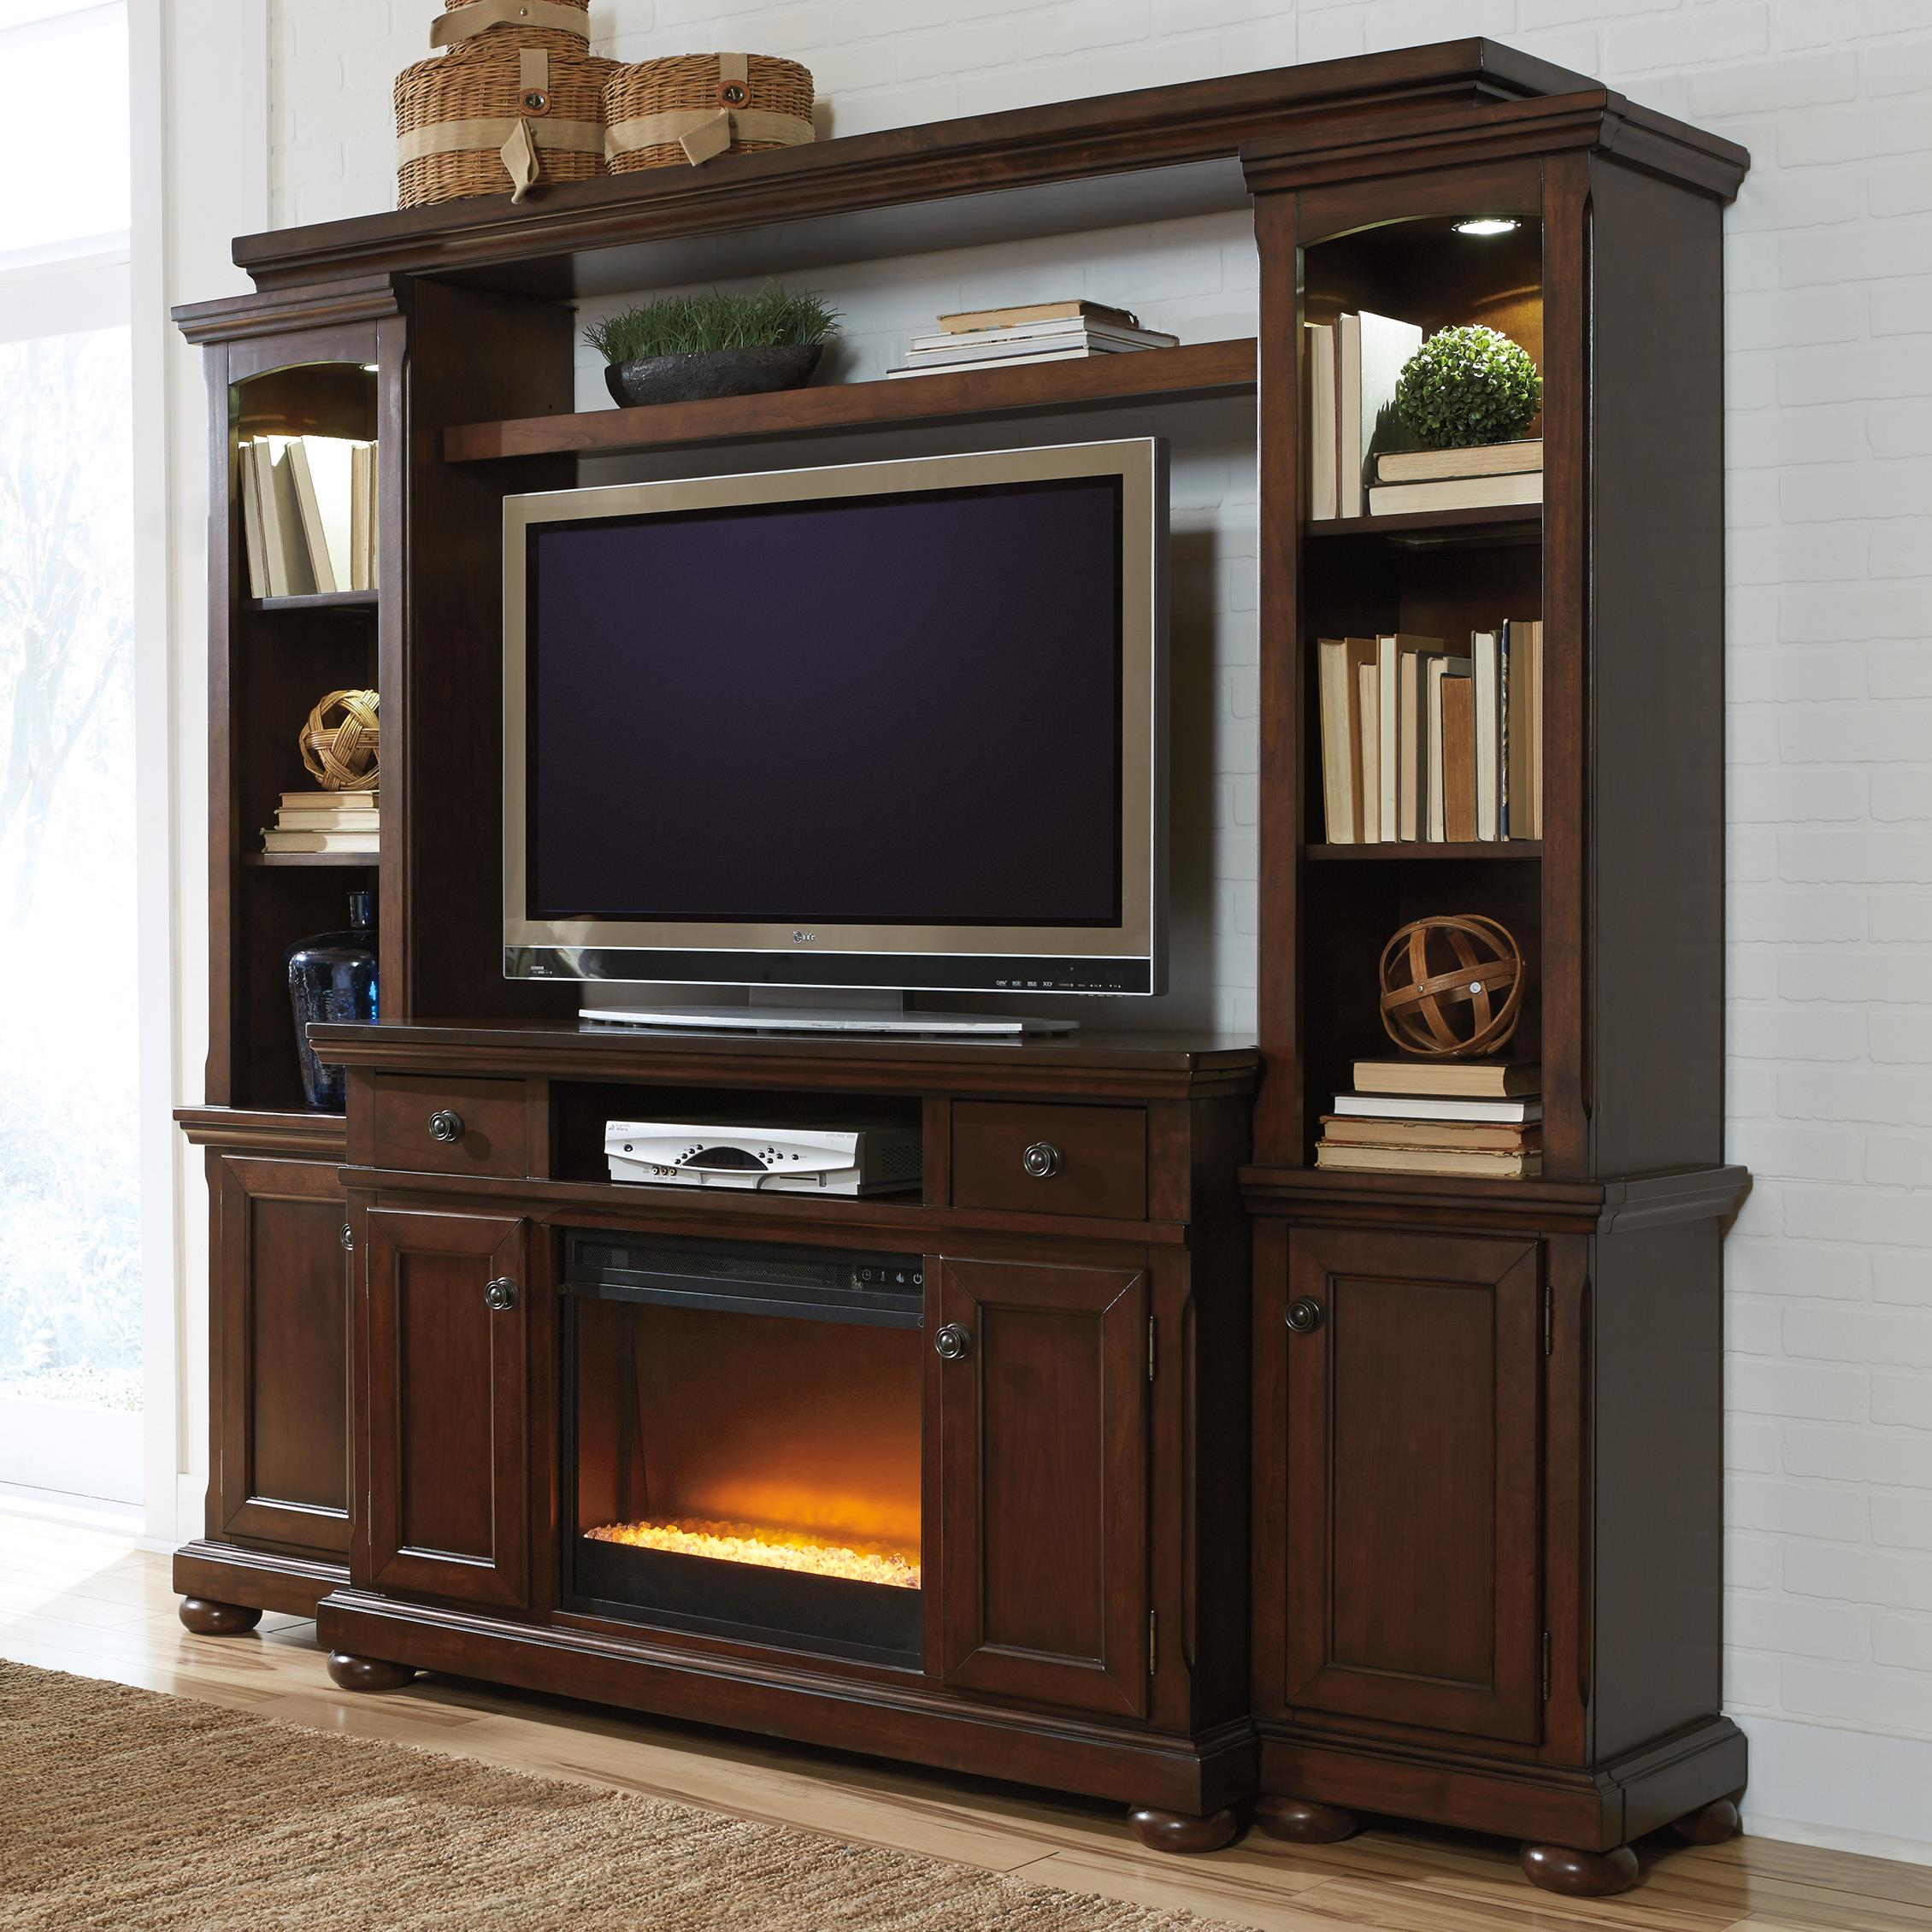 Millennium Porter TV Stand, Bridge, and Piers - Item Number: W697-24+25+23+120+W100-02